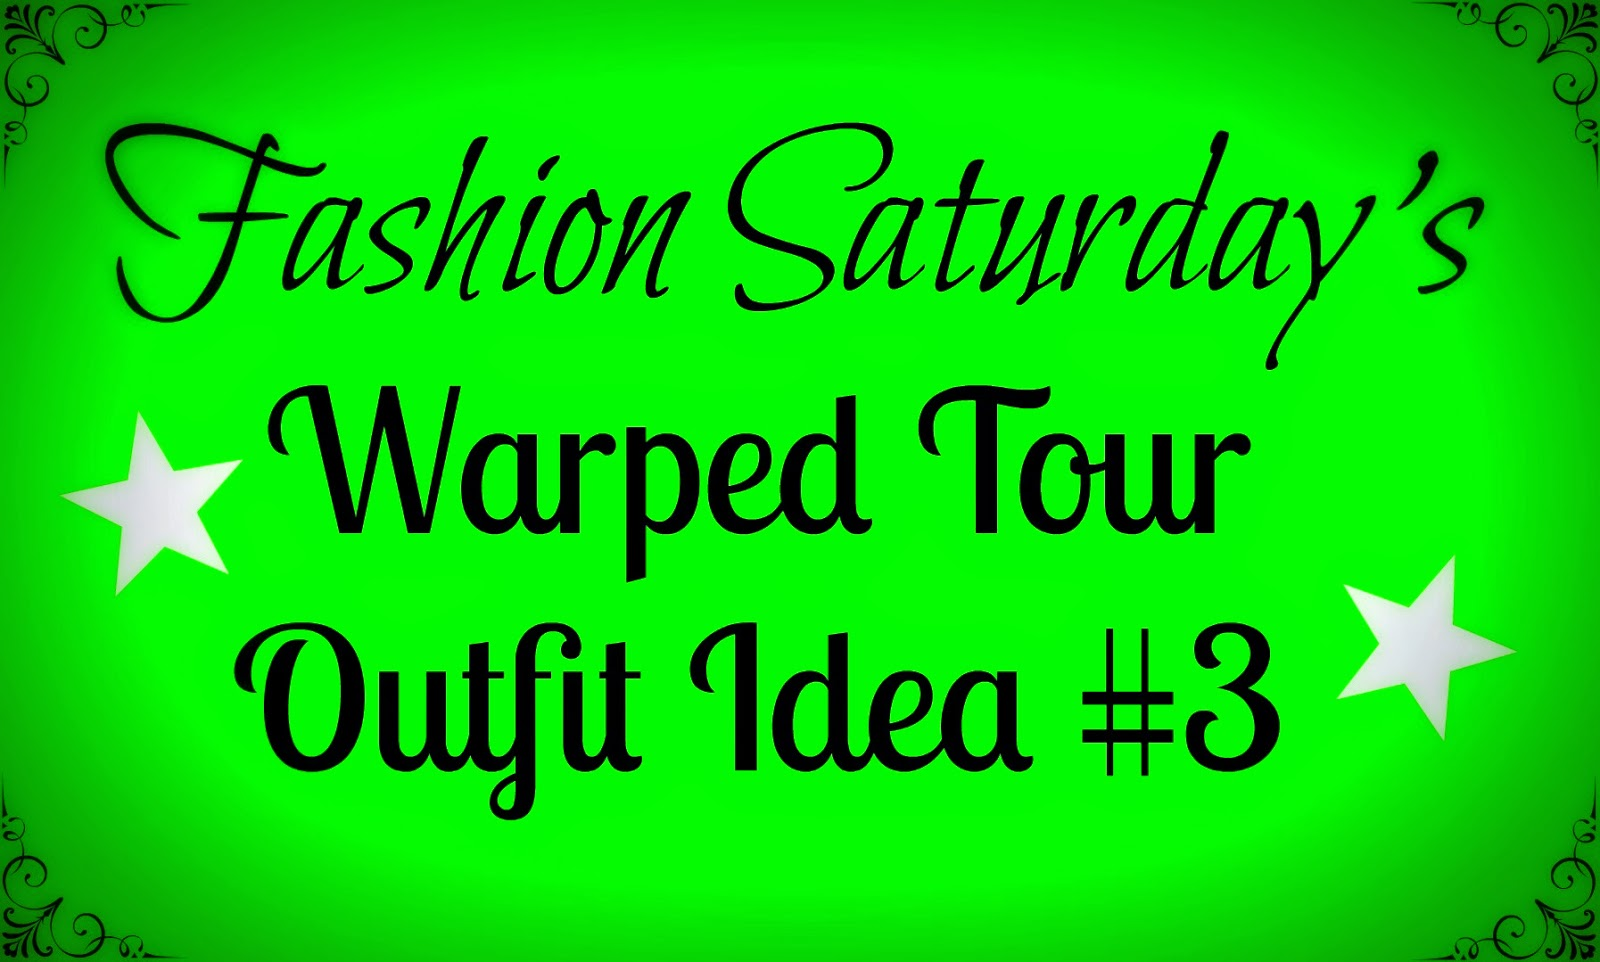 Fashion Saturday's Warped Tour Outfit Idea #3